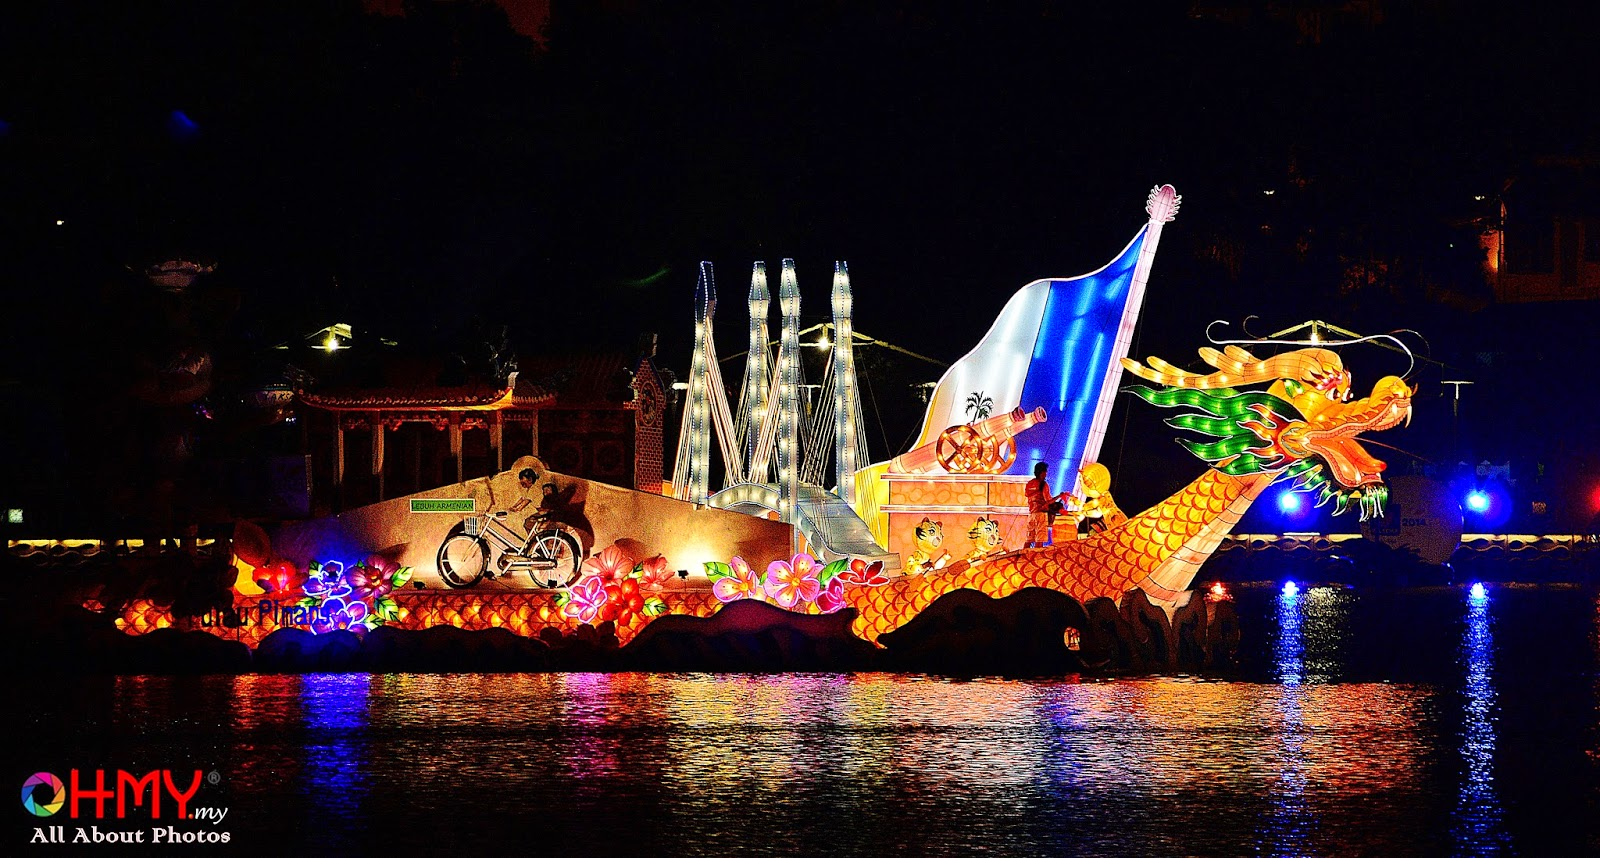 Warna Wani Magic Of The Night | Floria Putrajaya 2014